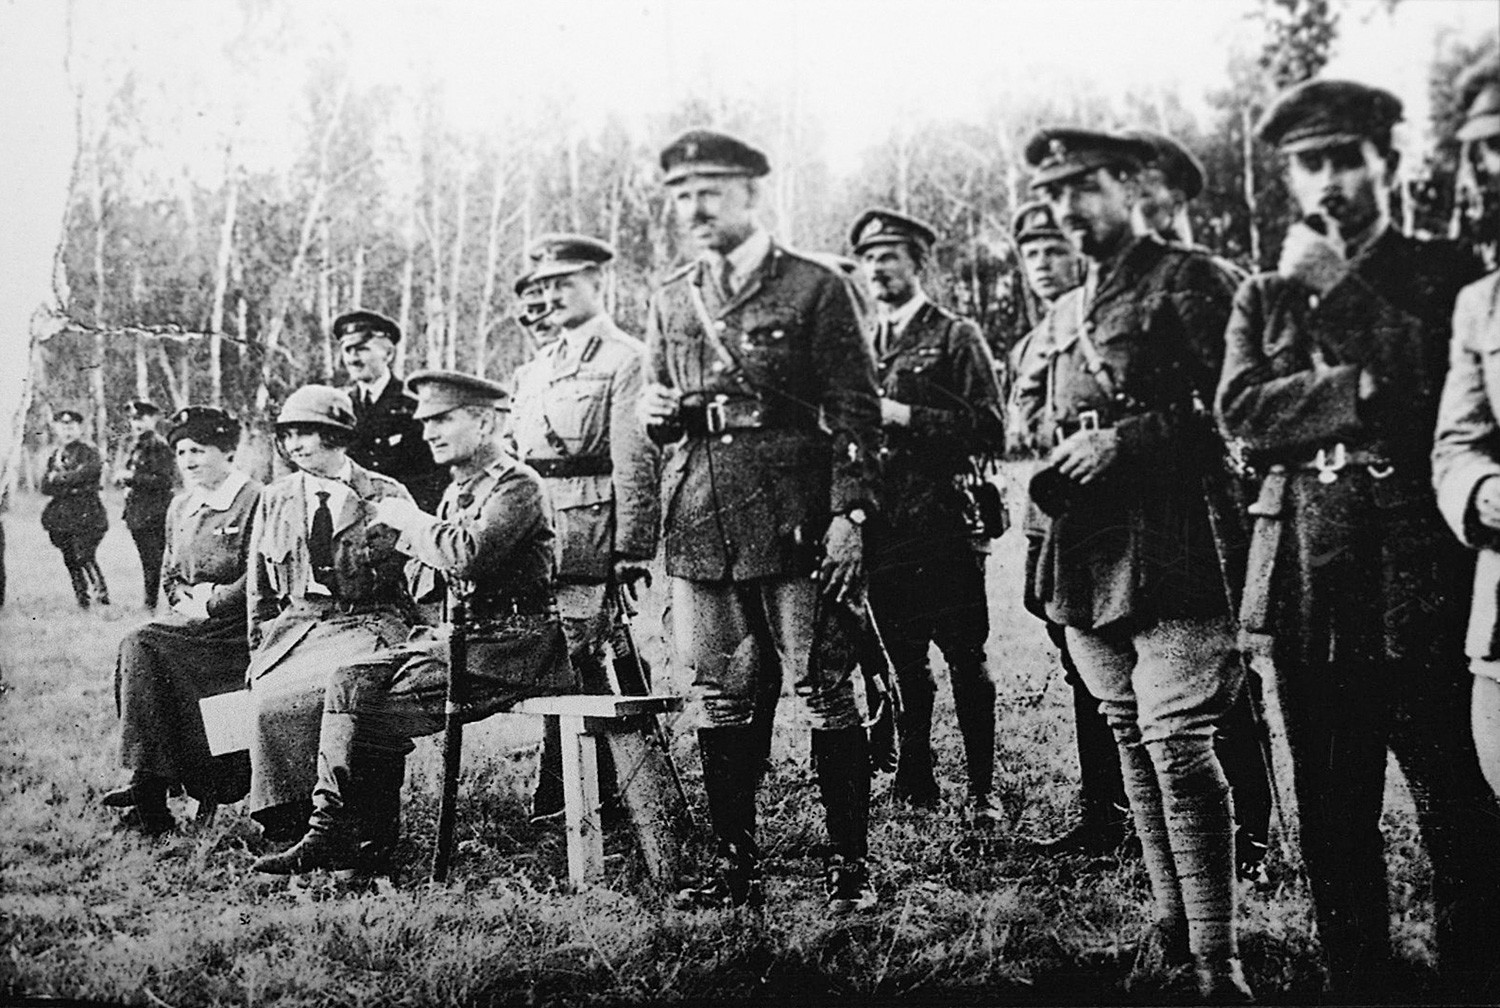 Admiral Alexander Kolchak, the leader of the anti-Bolshevik movement (sitting, on the right), with British officers on the Eastern Front, Russia, 1918.